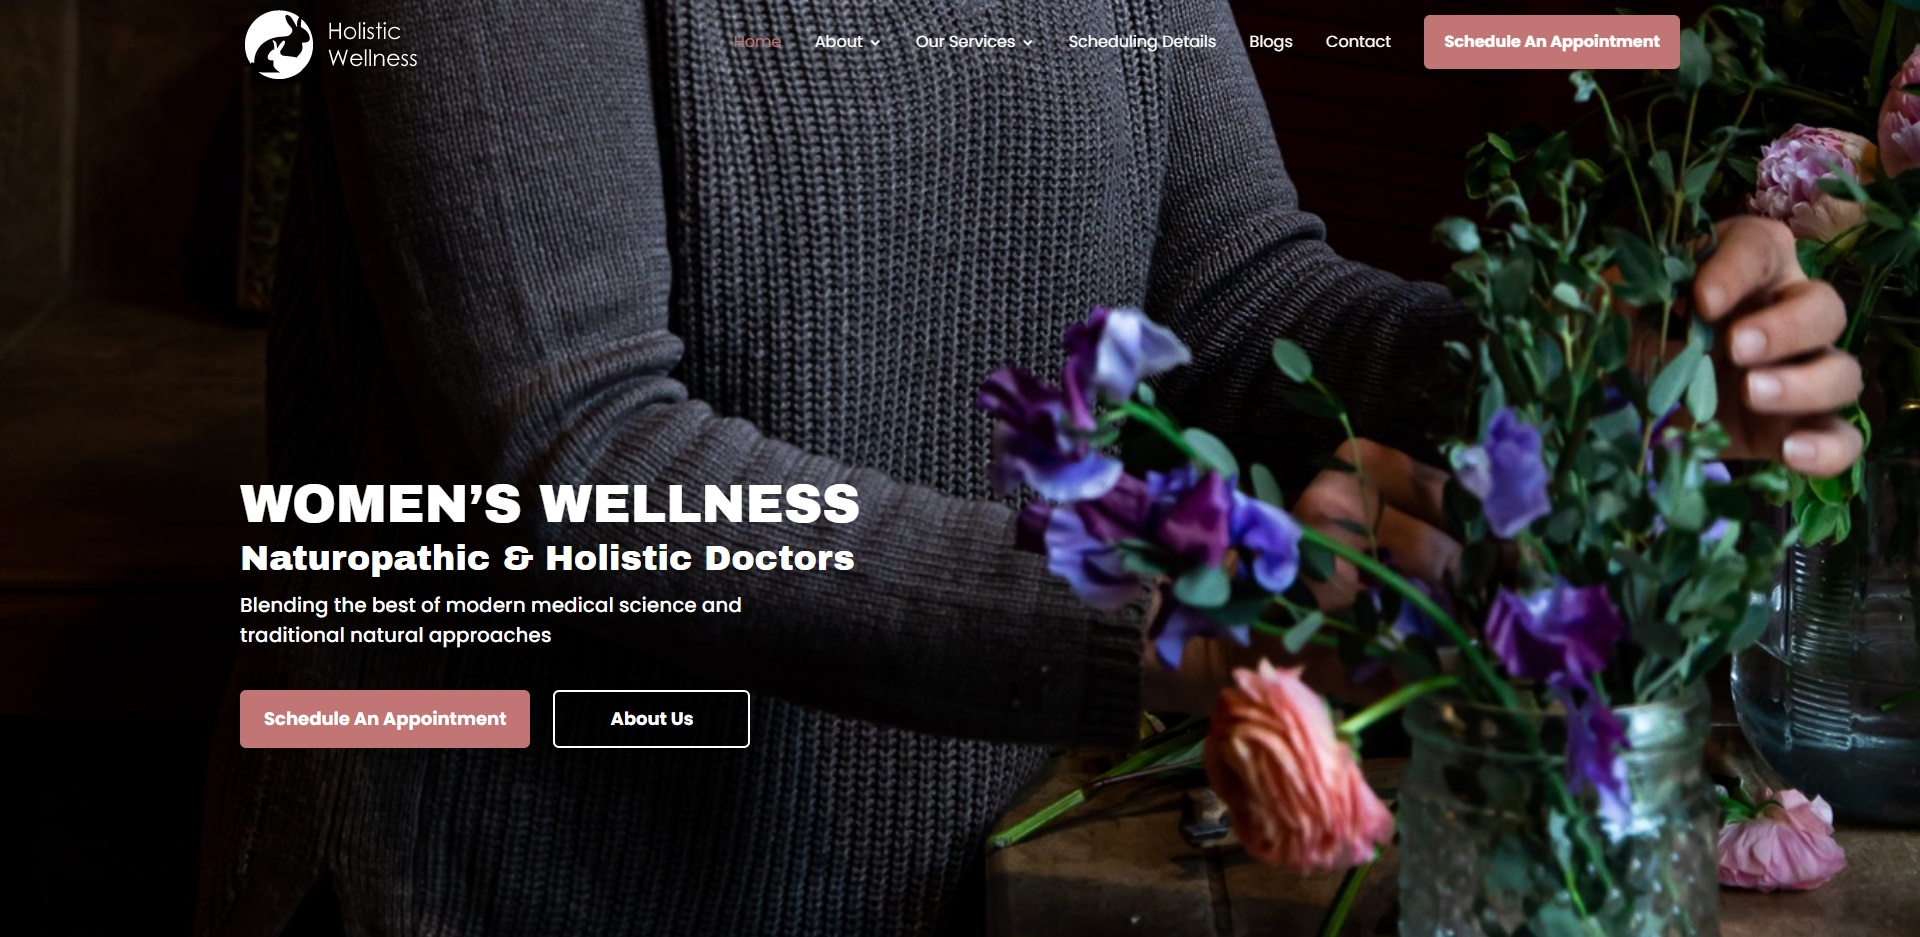 The Best Naturopathy in Dallas